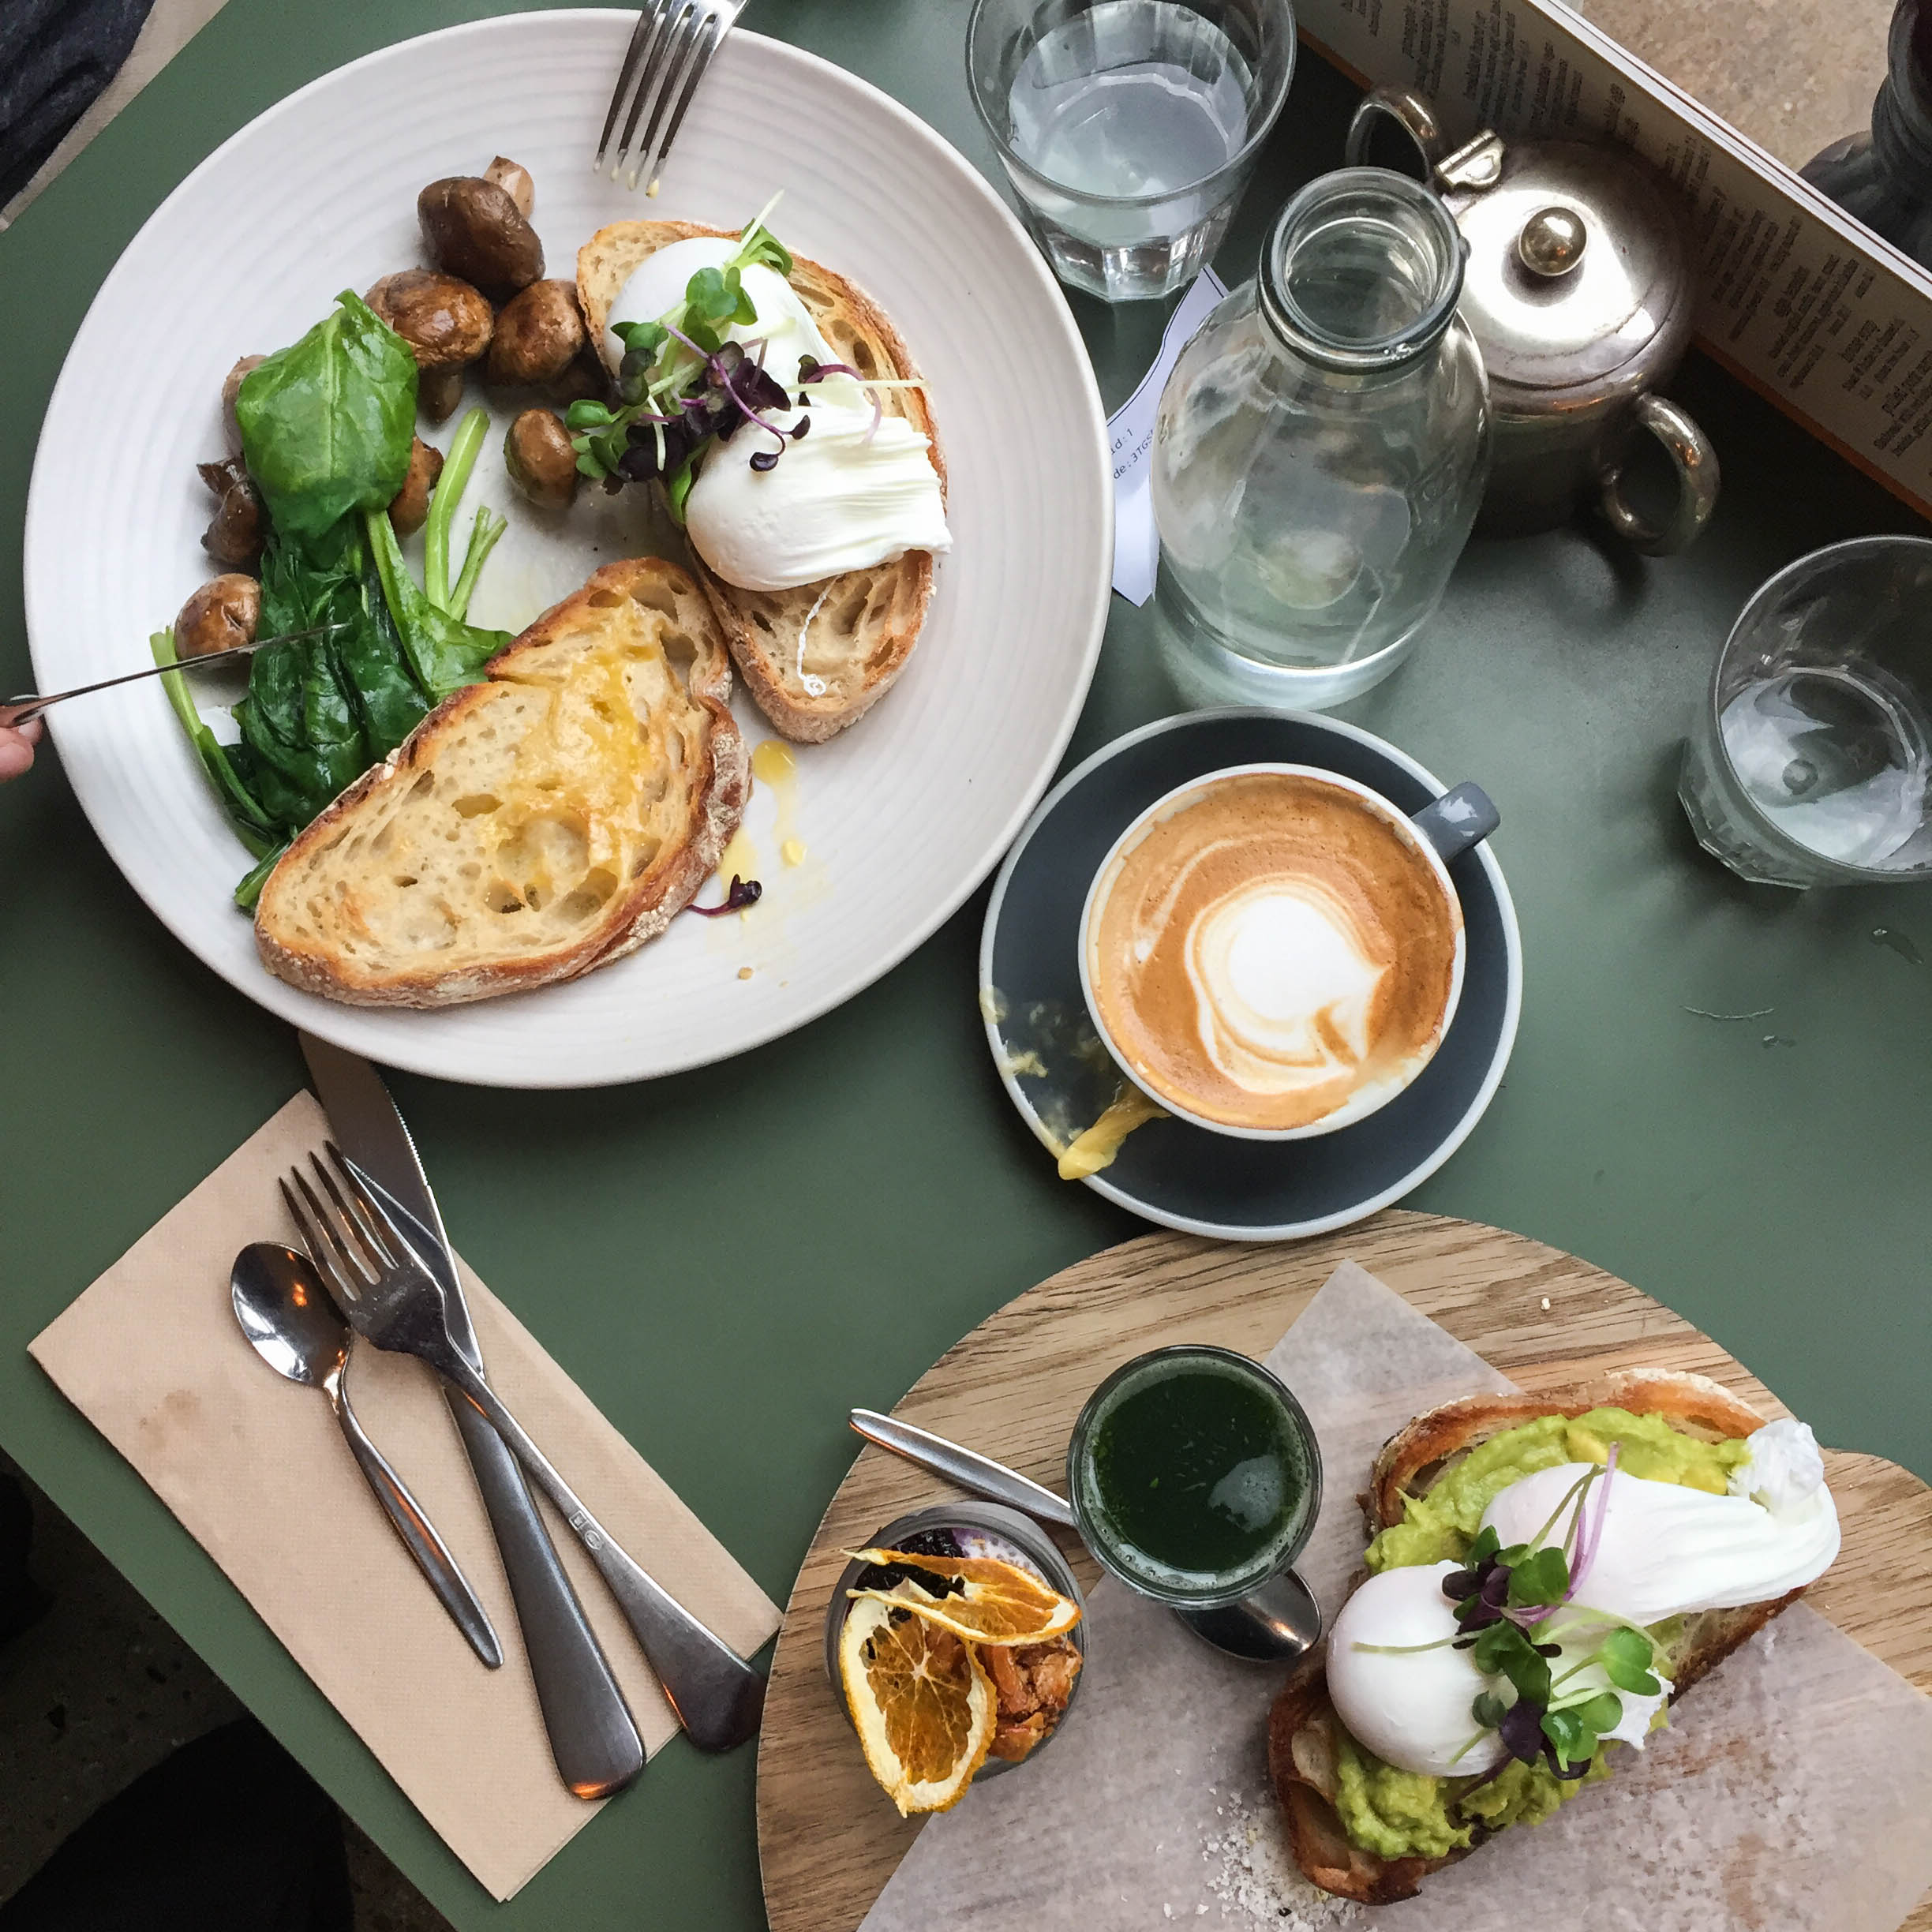 Brekkie at Bespoke Kitchen in Queenstown, New Zealand